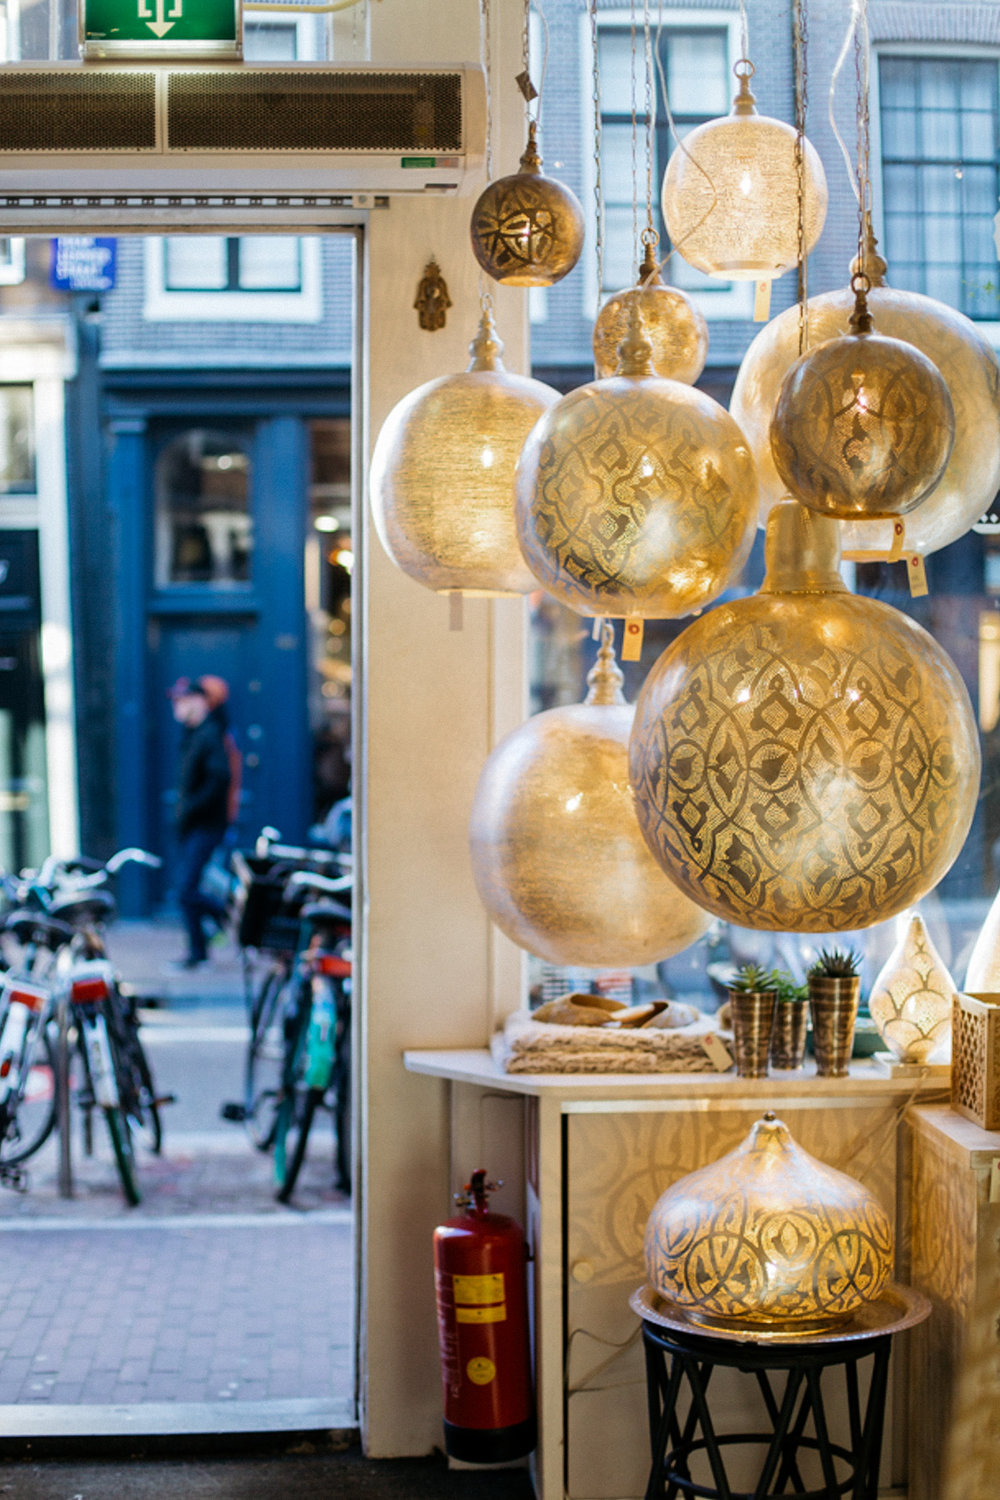 Heather Bullard | Amsterdam Shopping